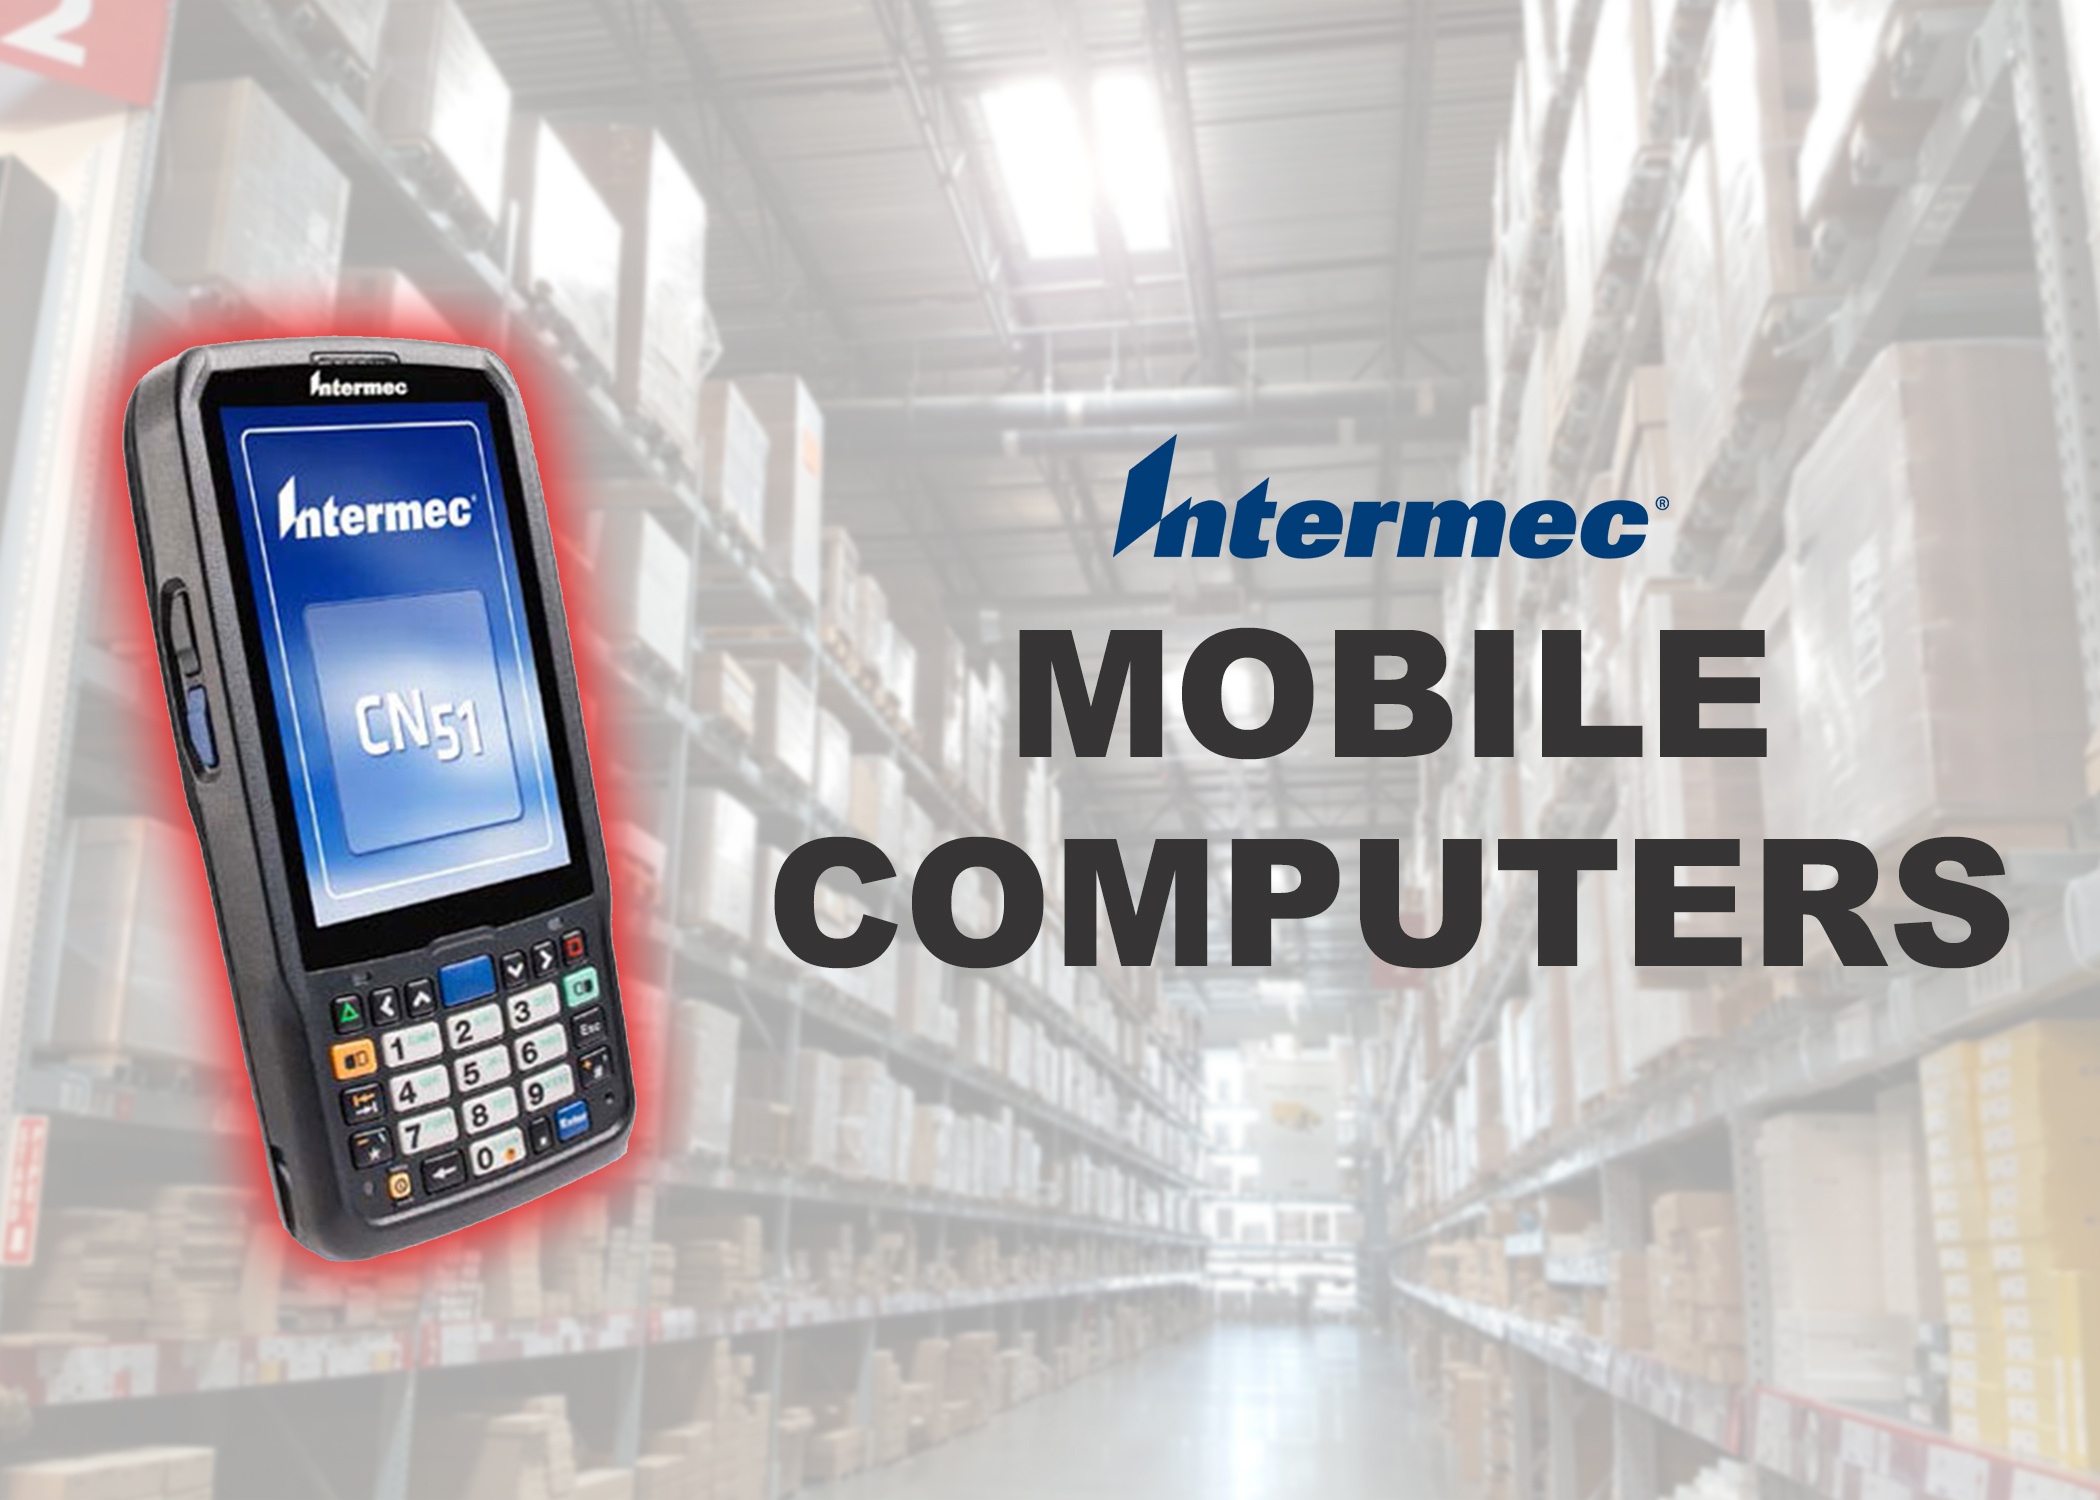 intermec by honeywell mobile computer